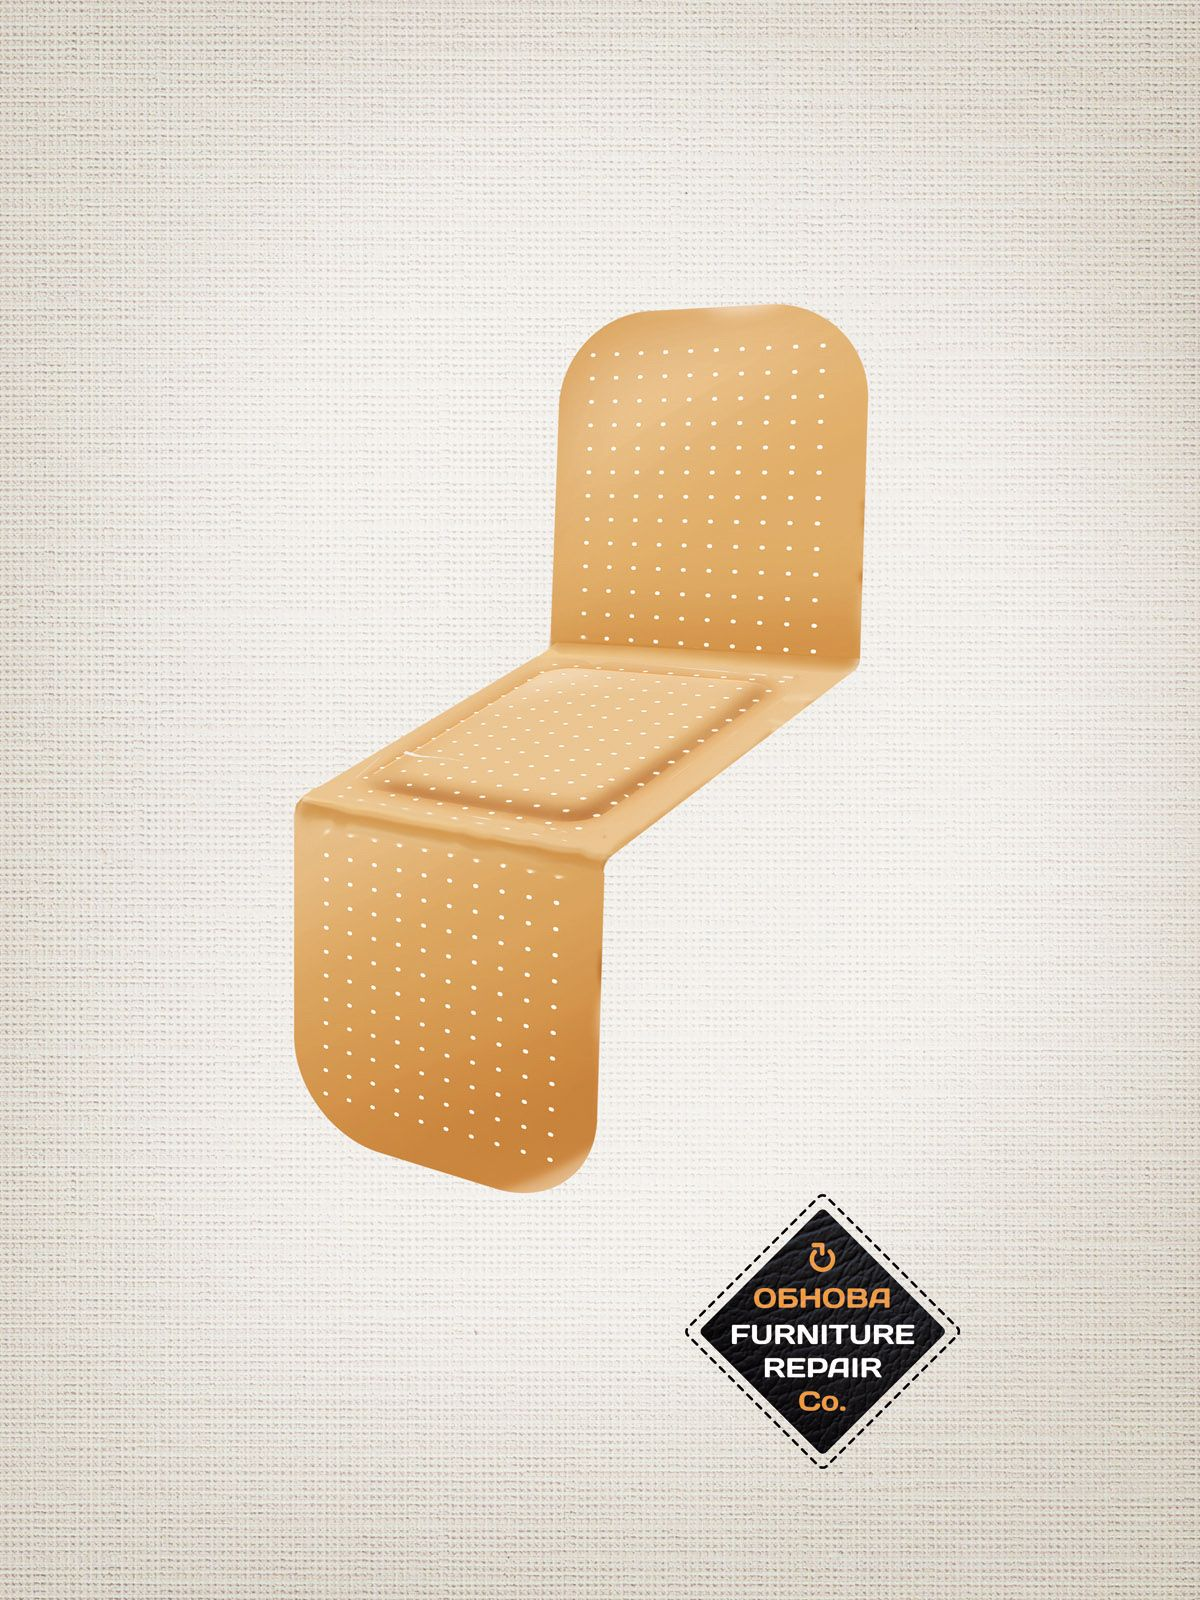 band aid ad from obnova furniture repair agency new moment new ideas